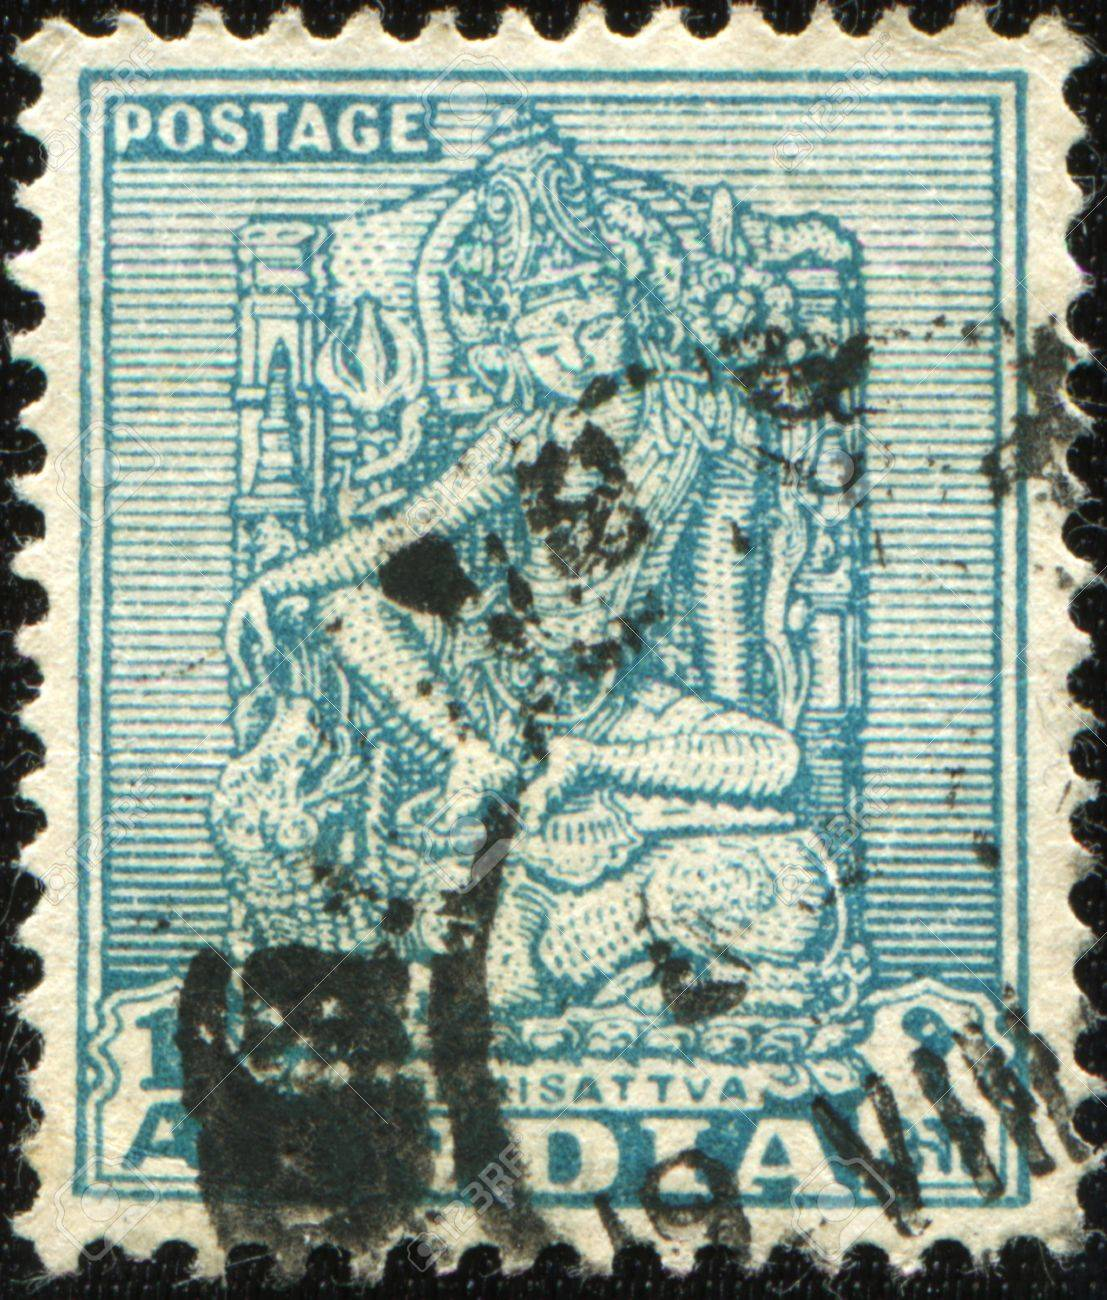 Magnificent India Circa 1949 A Stamp Prunted In India Sshows Bodhisattva Hairstyles For Women Draintrainus